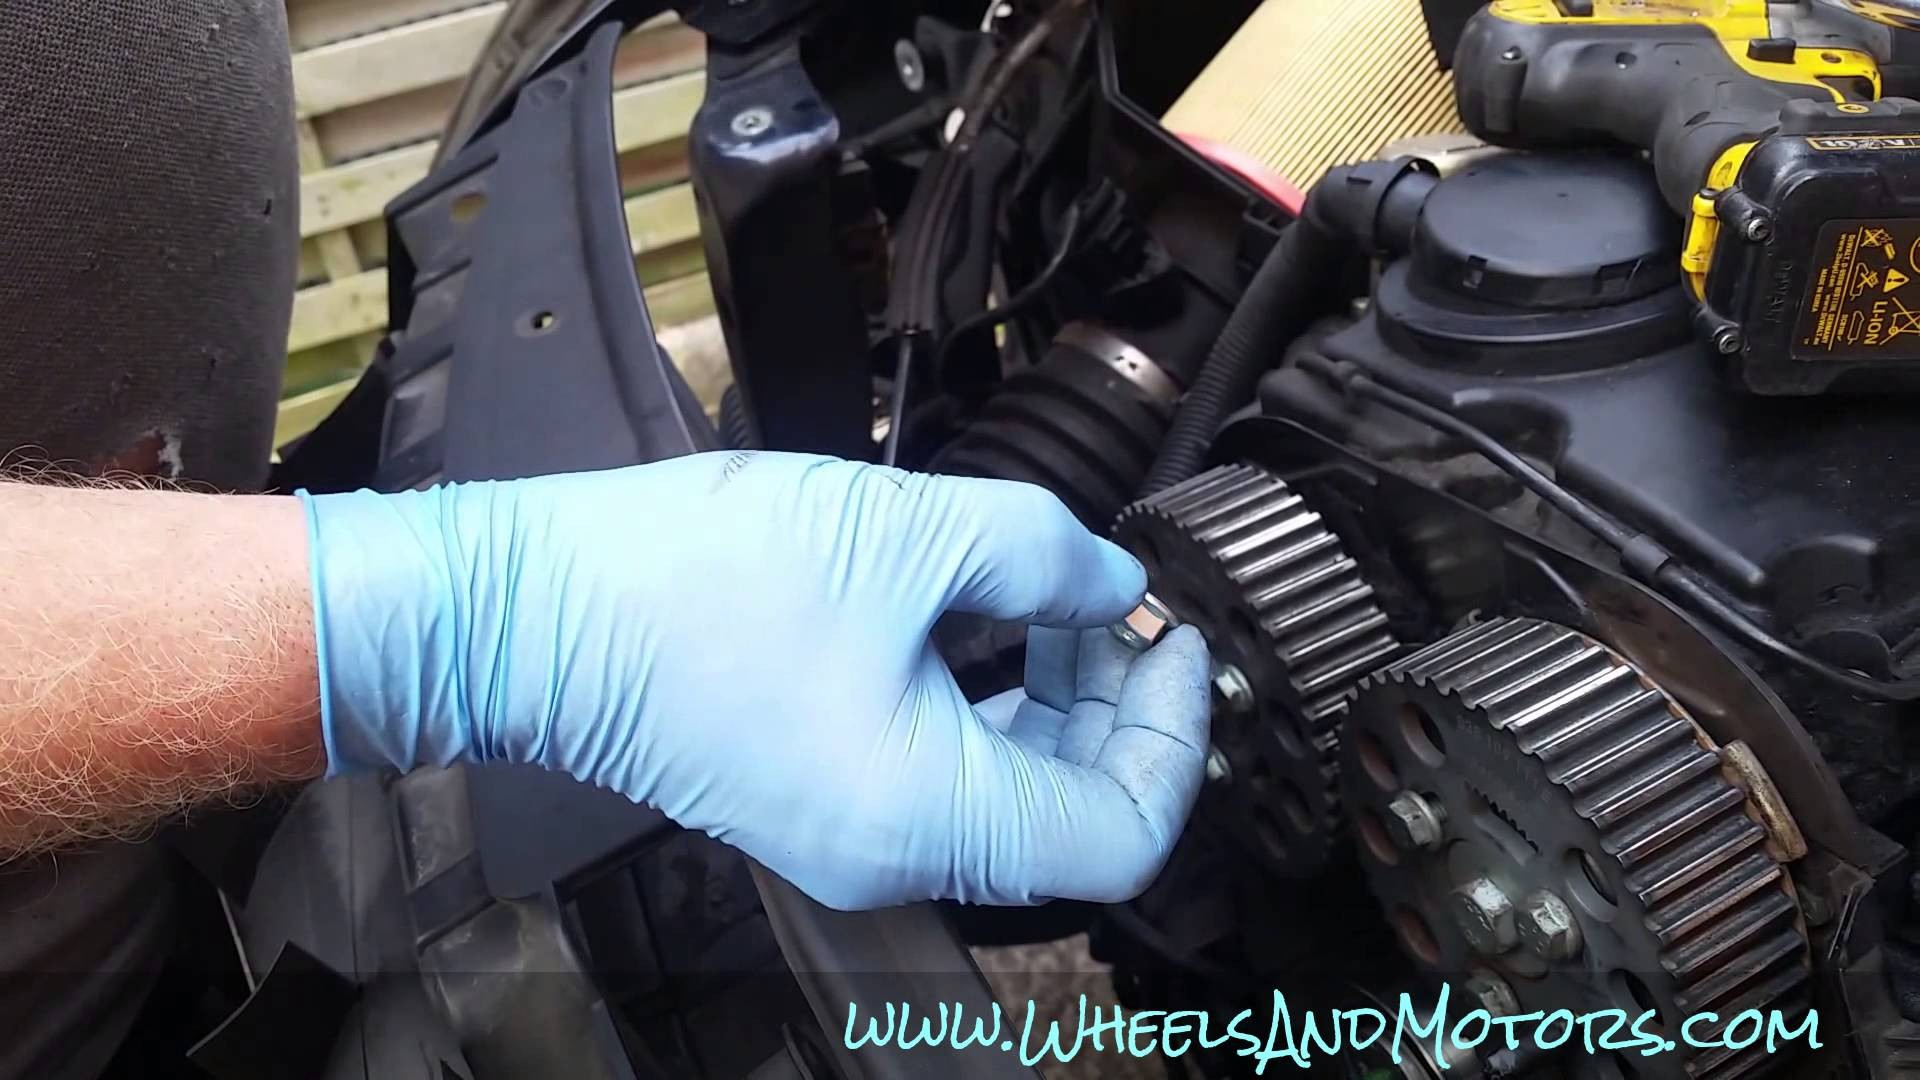 2001 Vw Passat Engine Diagram How to Replace Timing Belt Cambelt and Water Pump On 2 0 Tdi Of 2001 Vw Passat Engine Diagram